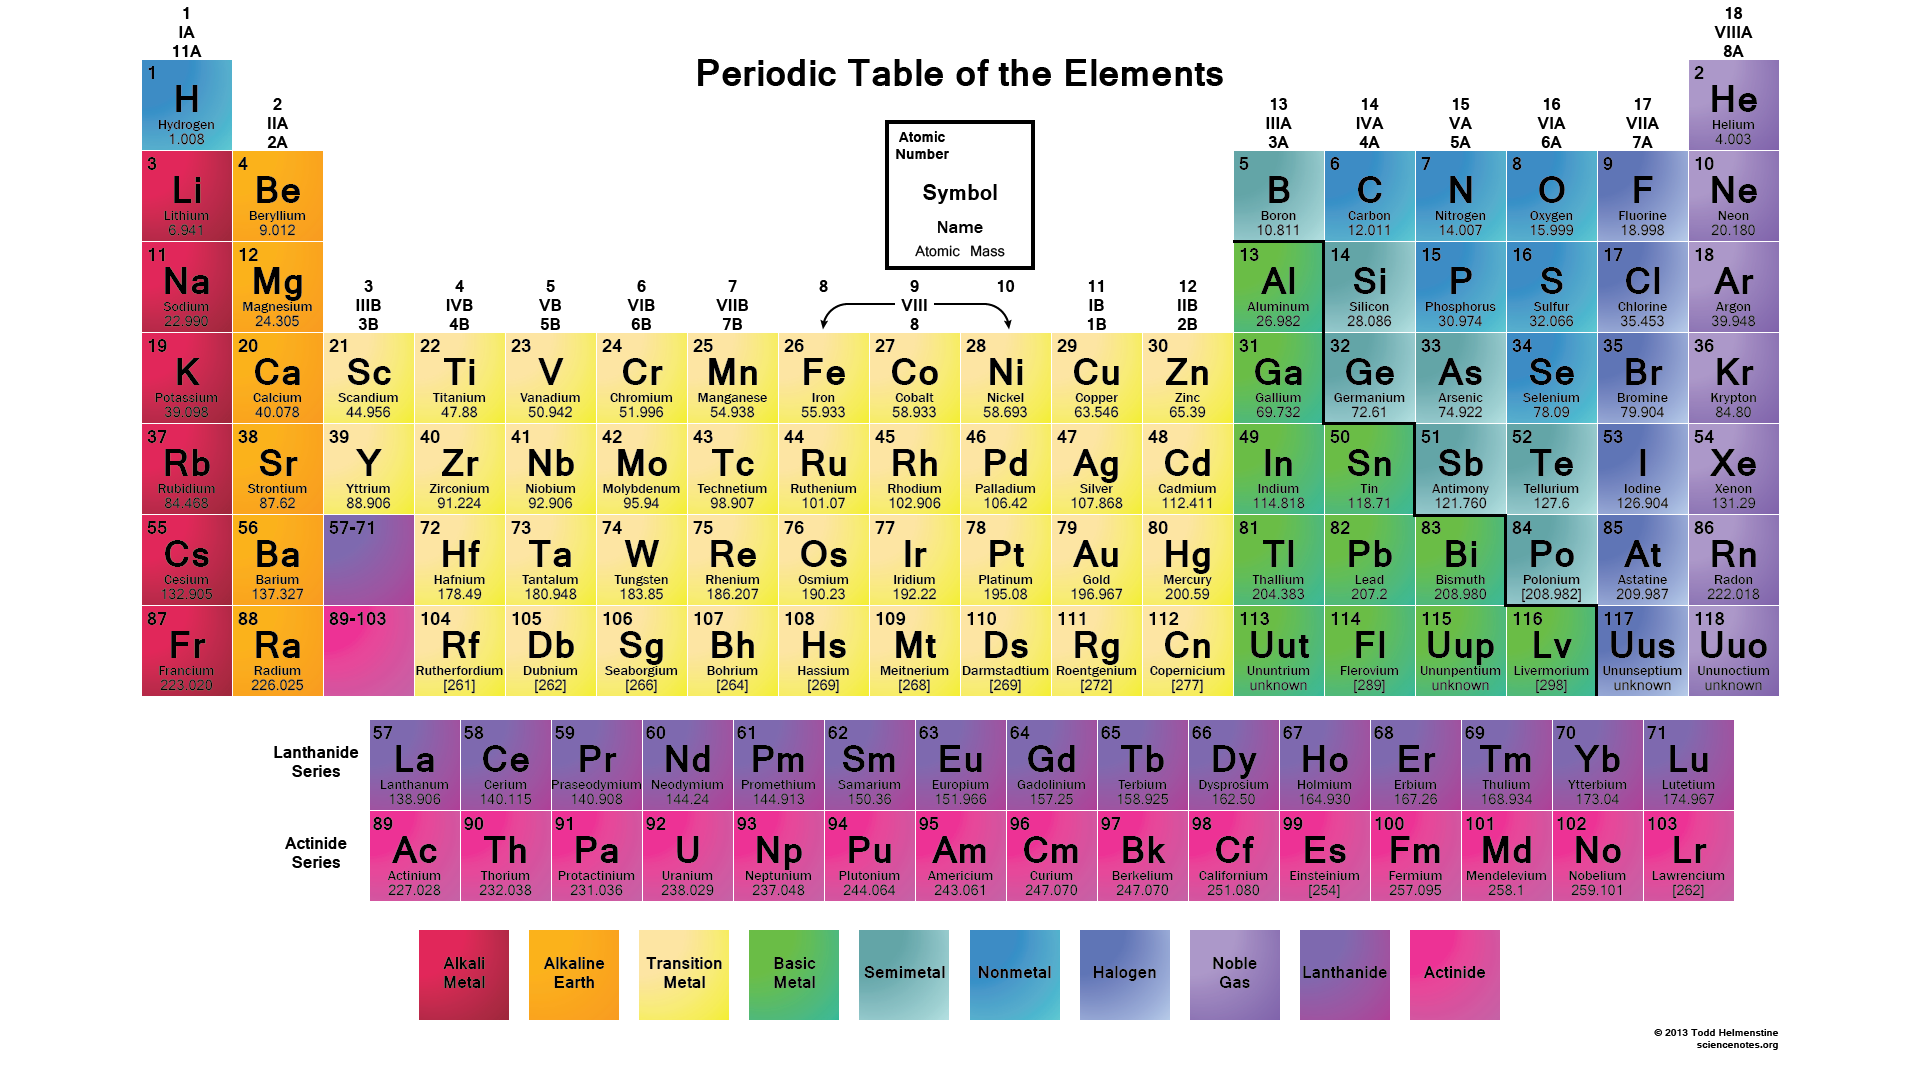 Periodic table of elements - metals